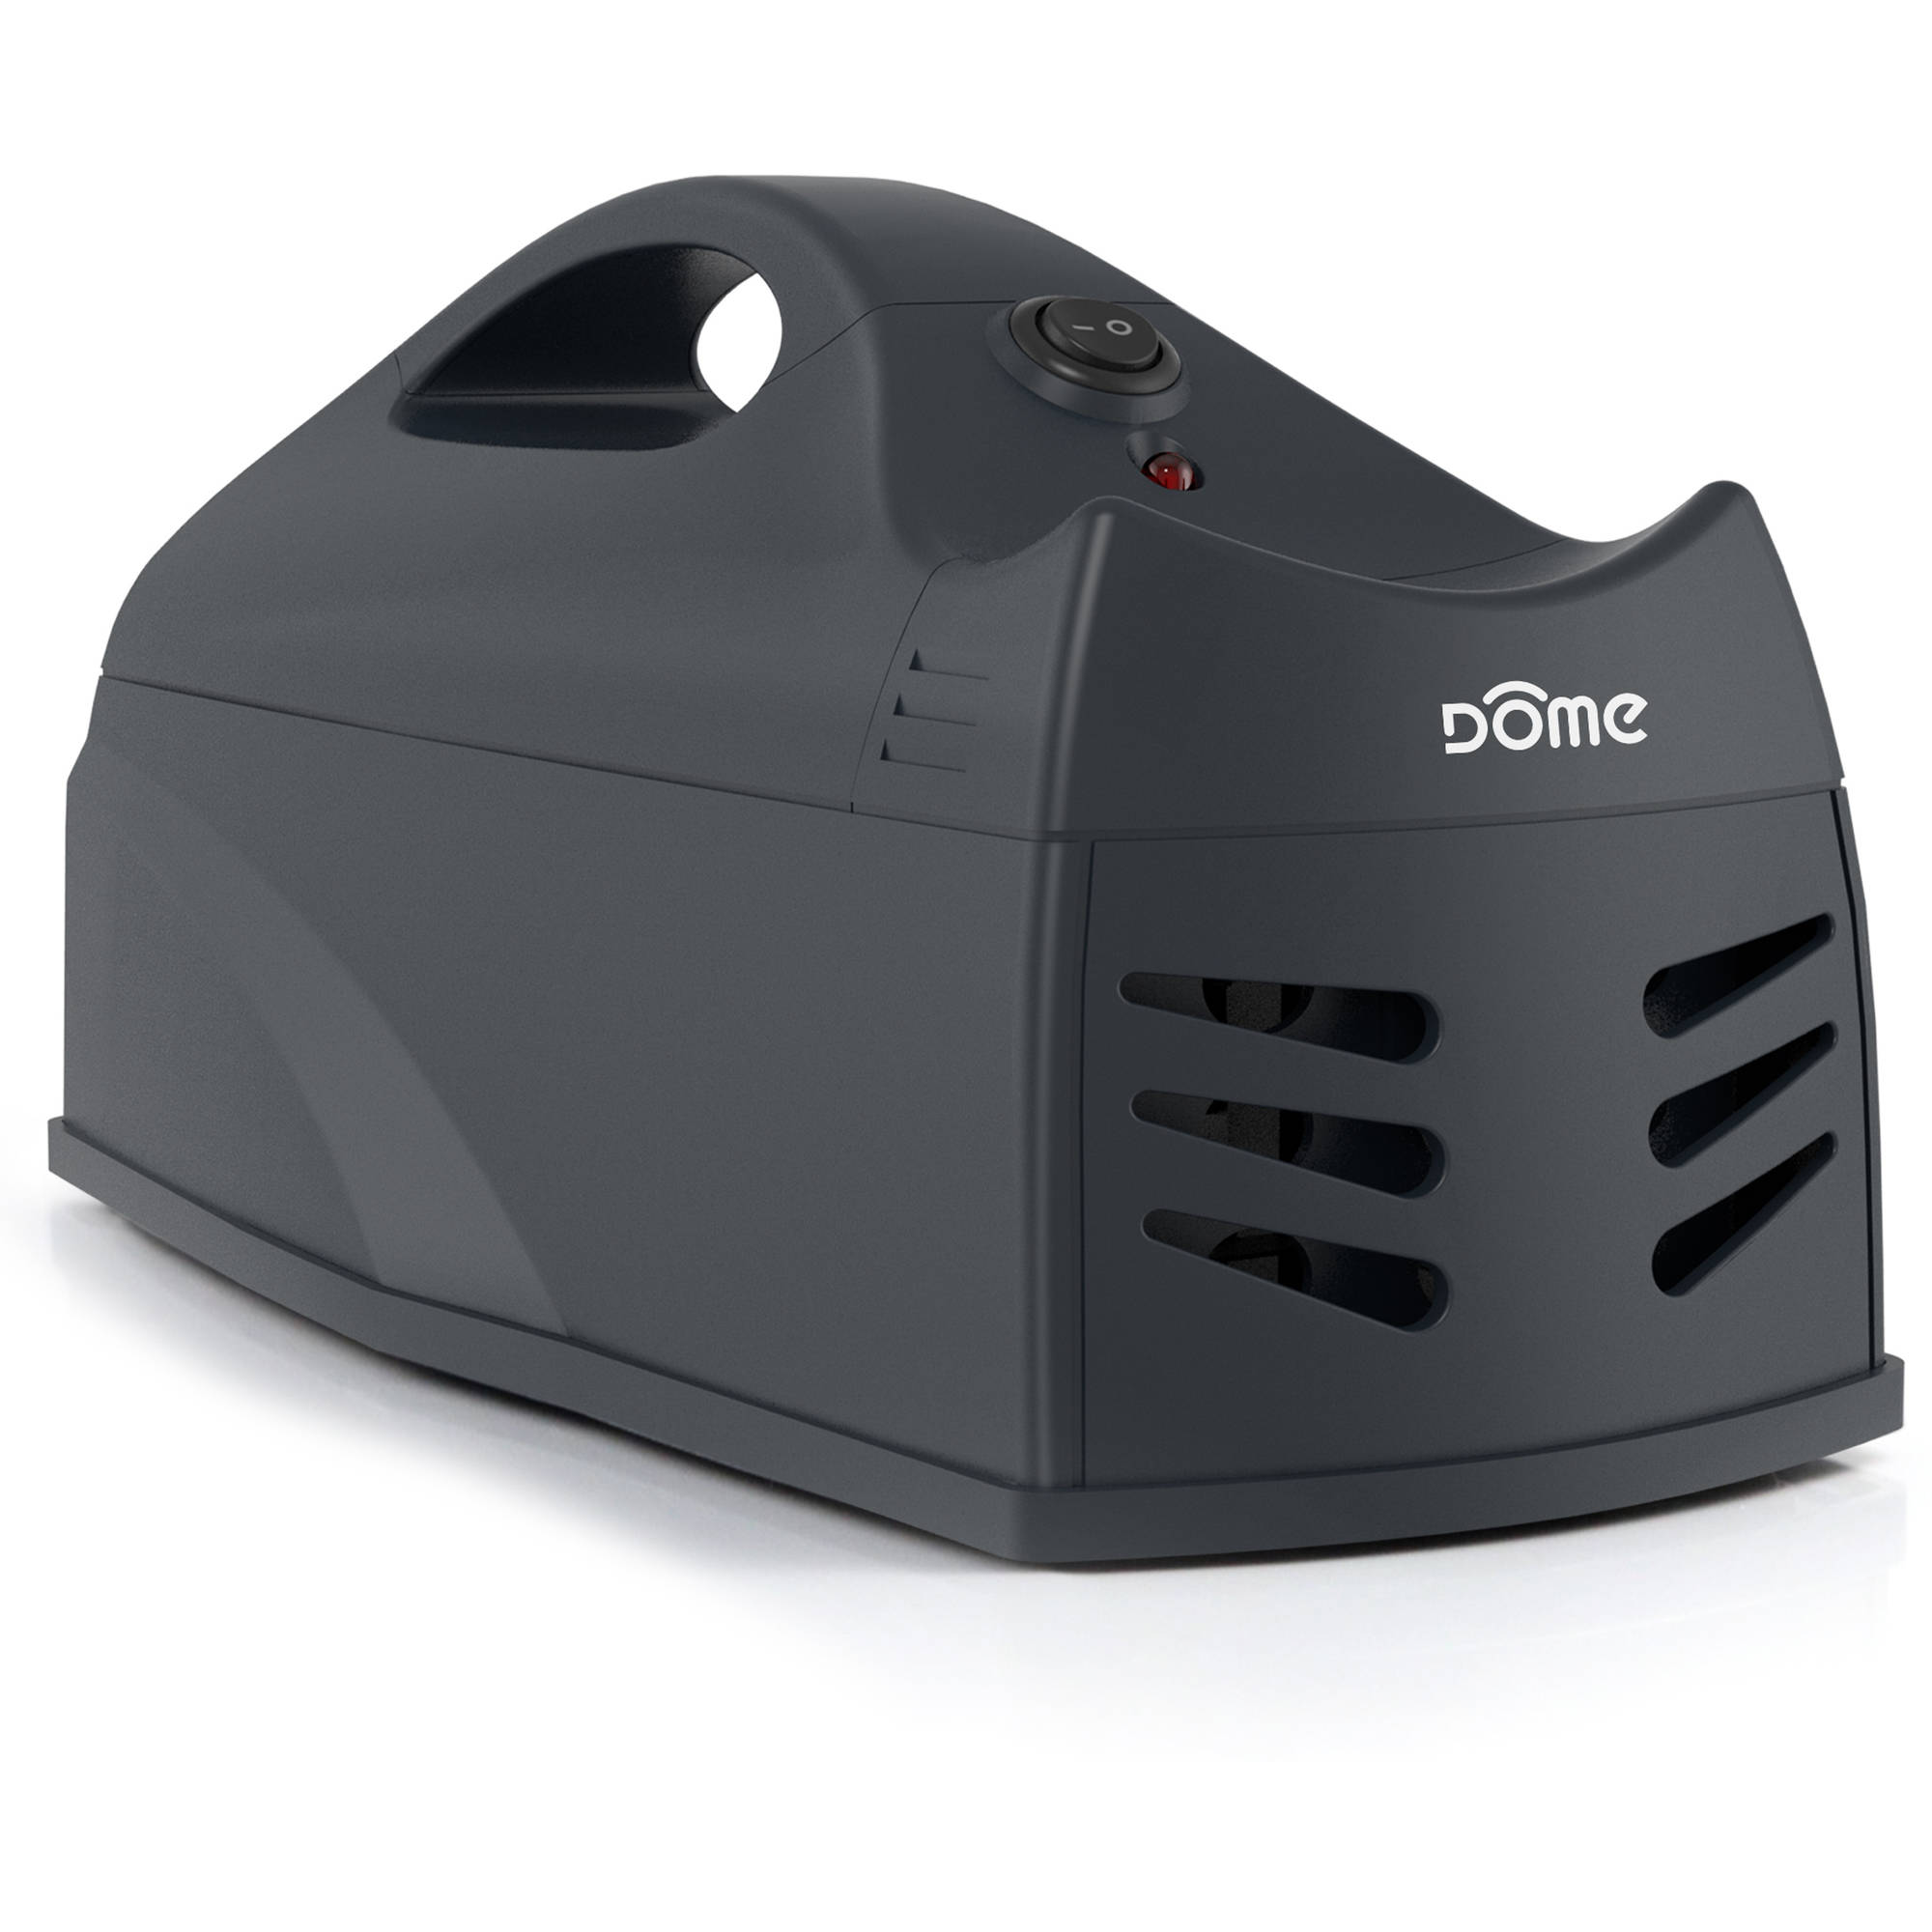 Dome DMMZ1 Smart Mouse, Rat and Rodent Trap, Hub Required